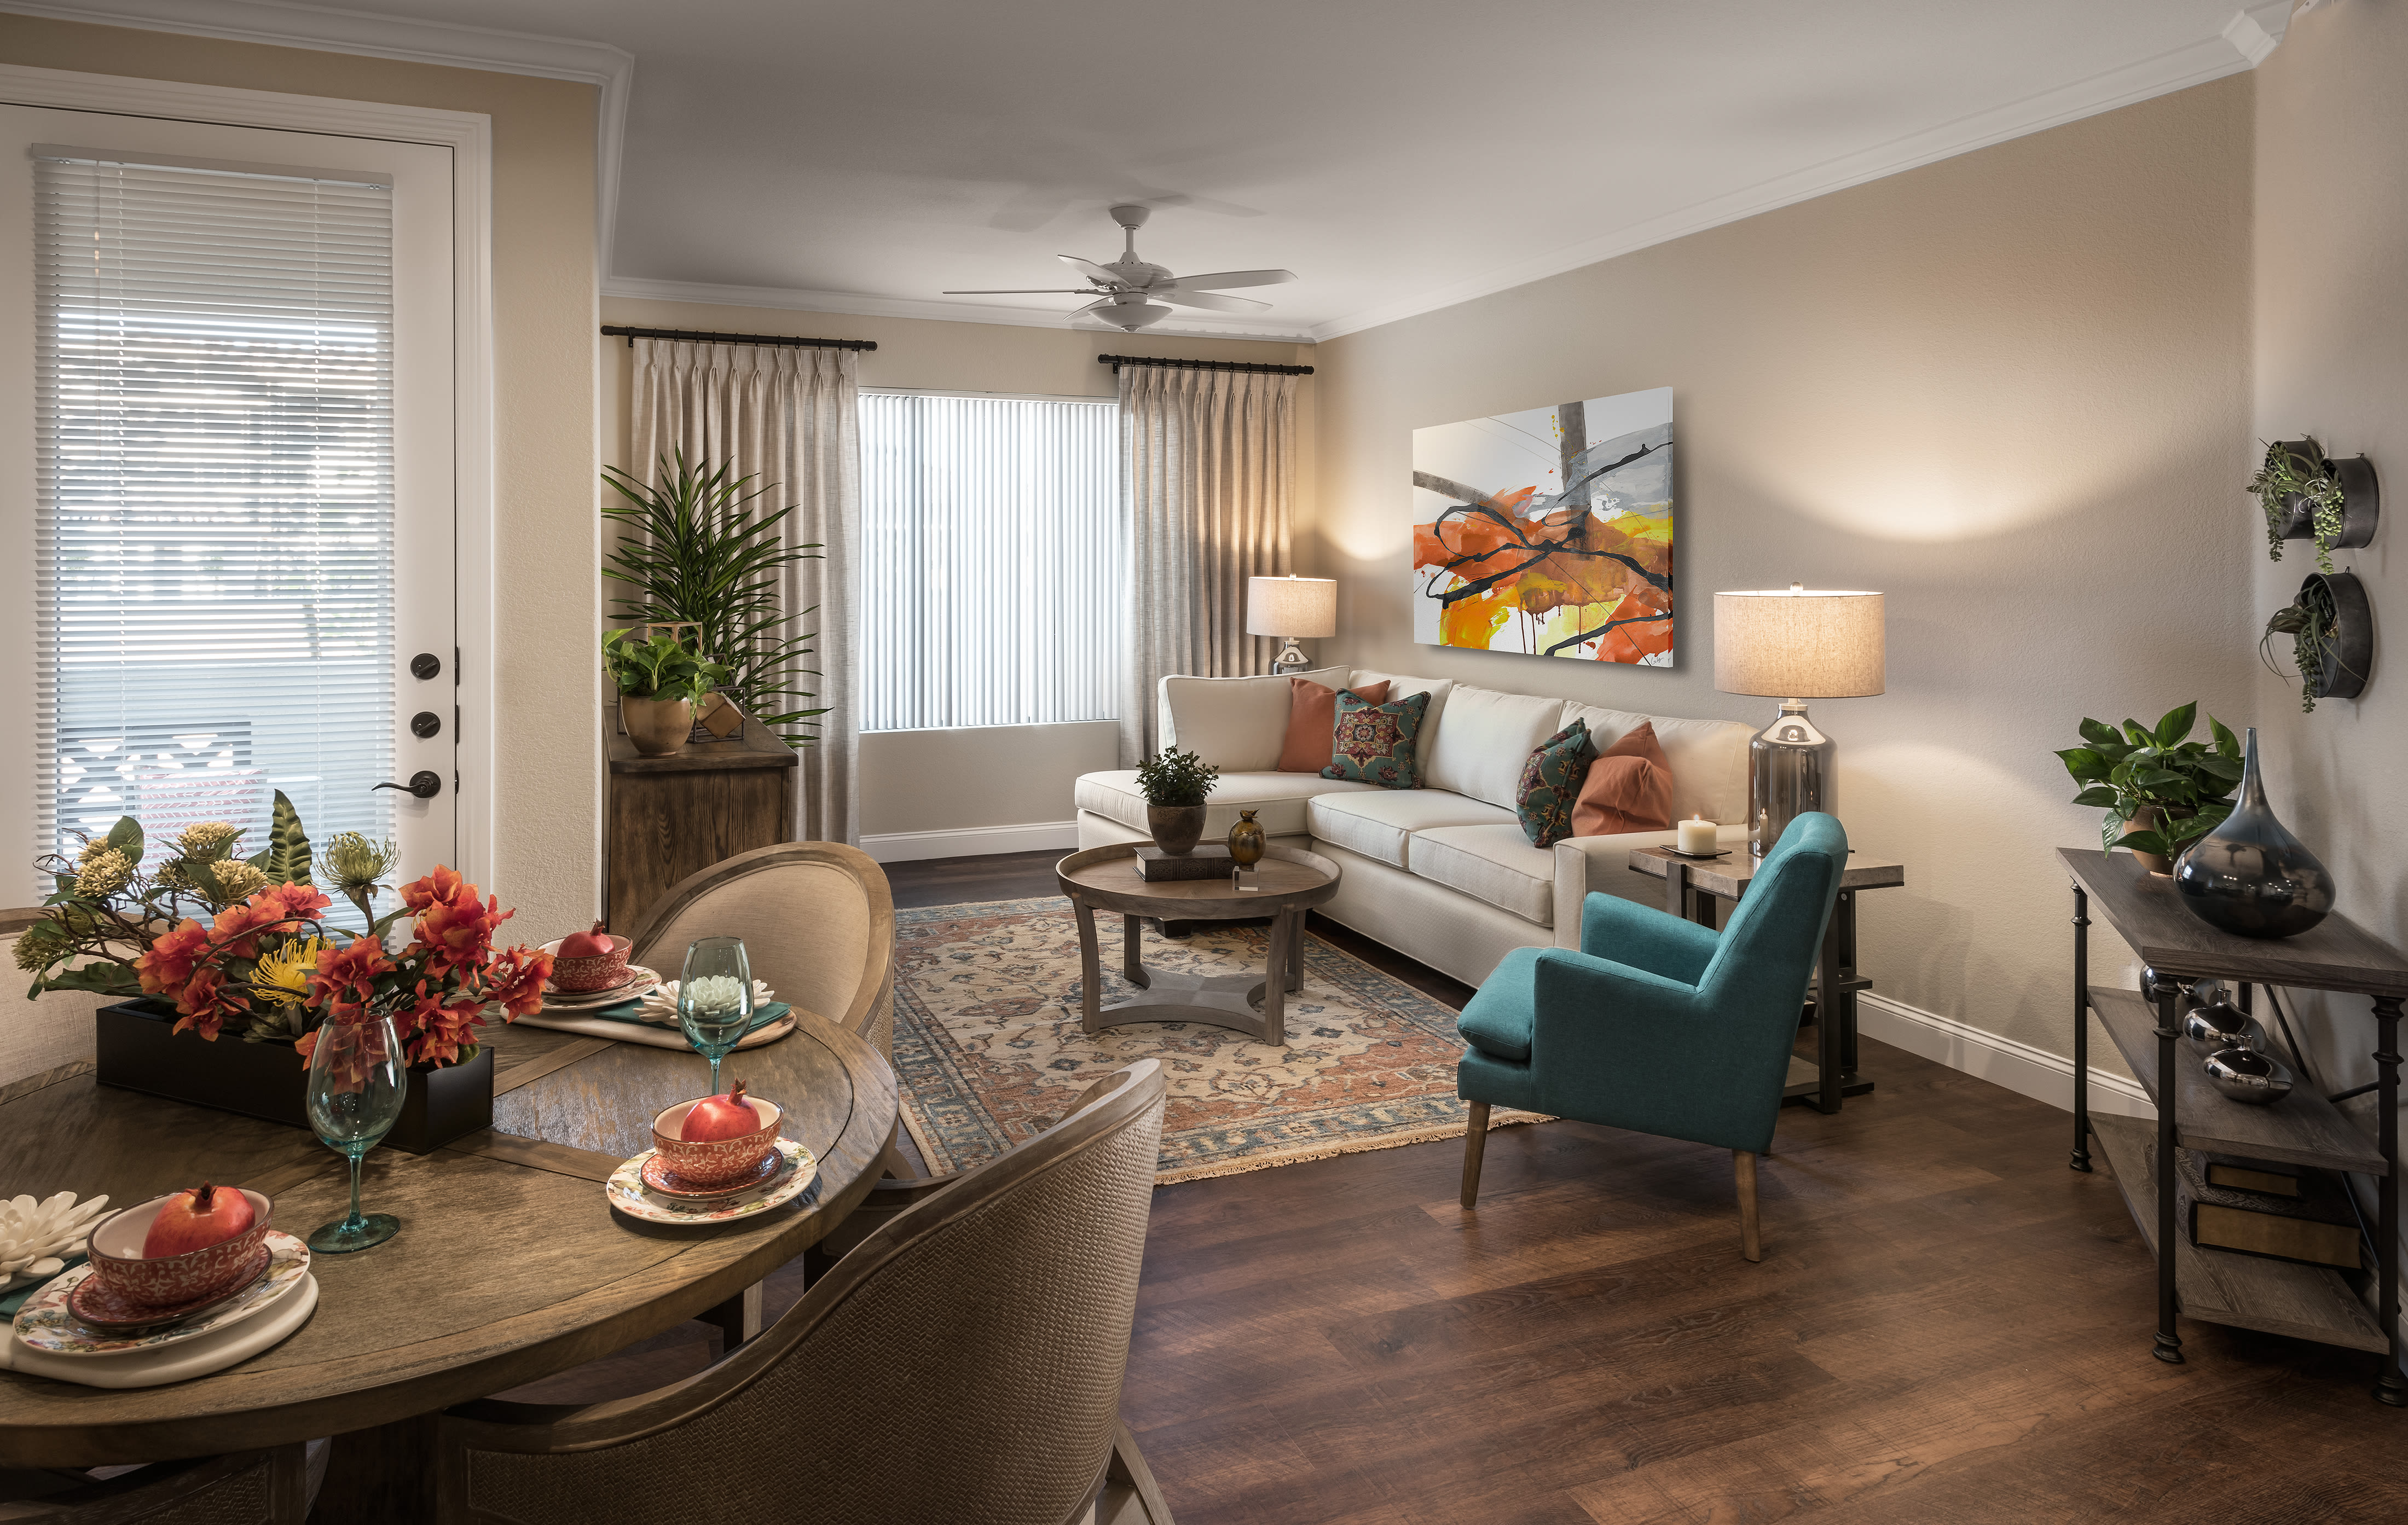 Open-concept layout with hardwood floors and ceiling fan in model home at San Villante in Mesa, Arizona